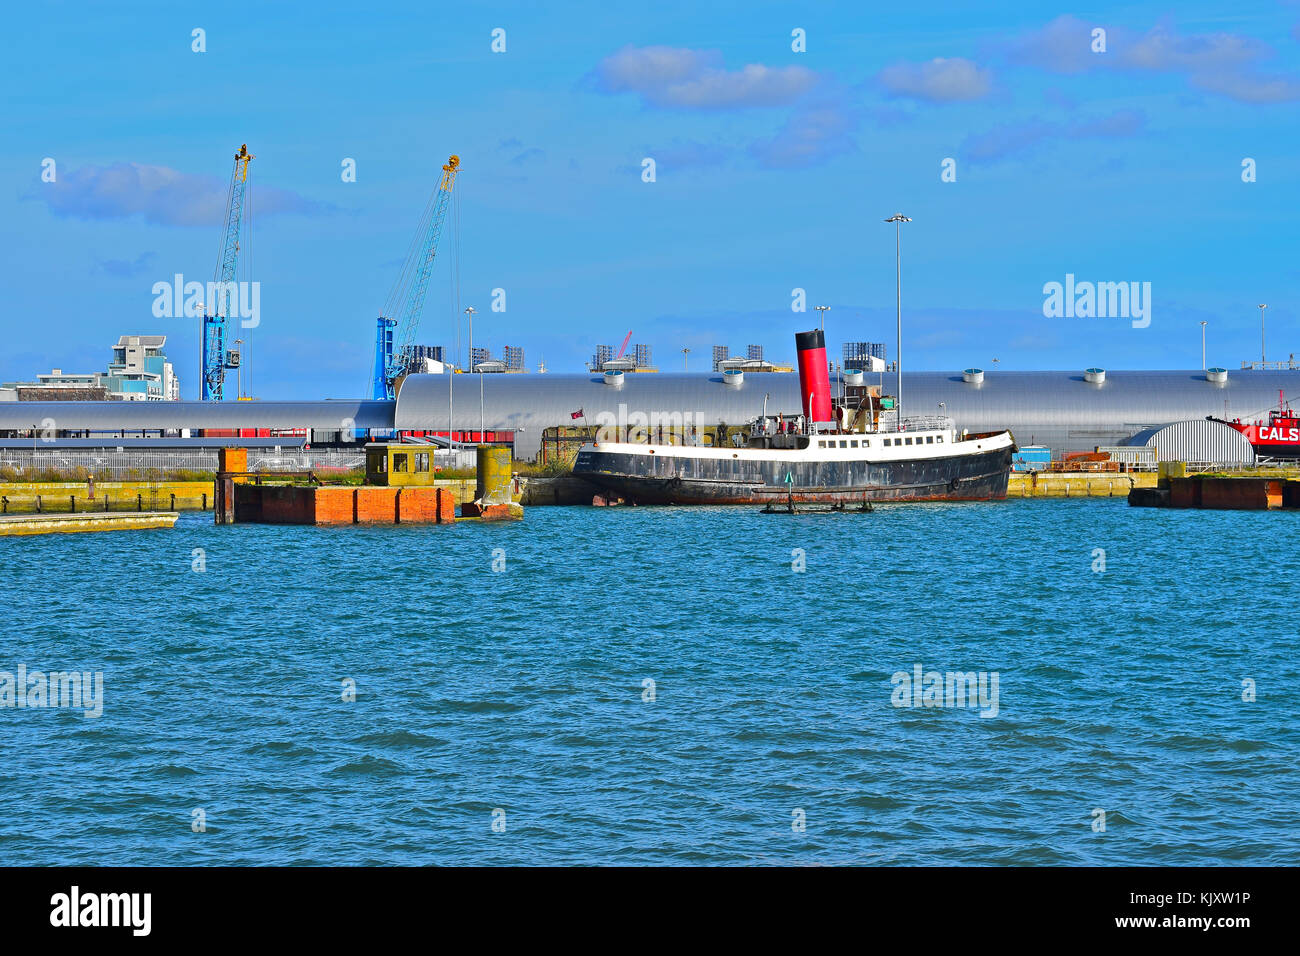 Old Calshot Tug/Tender boat(launched 1929) moored adjacent to Ocean Terminal Southampton.Formerly tug & tender - Stock Image